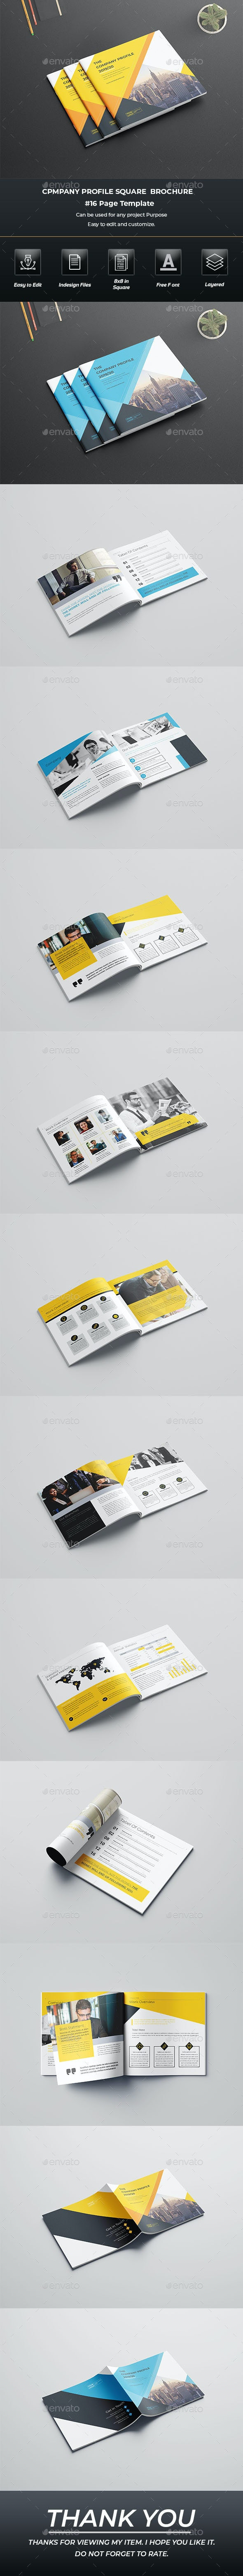 Square Company Profile Brochure Template Indesign - Brochures Print Templates